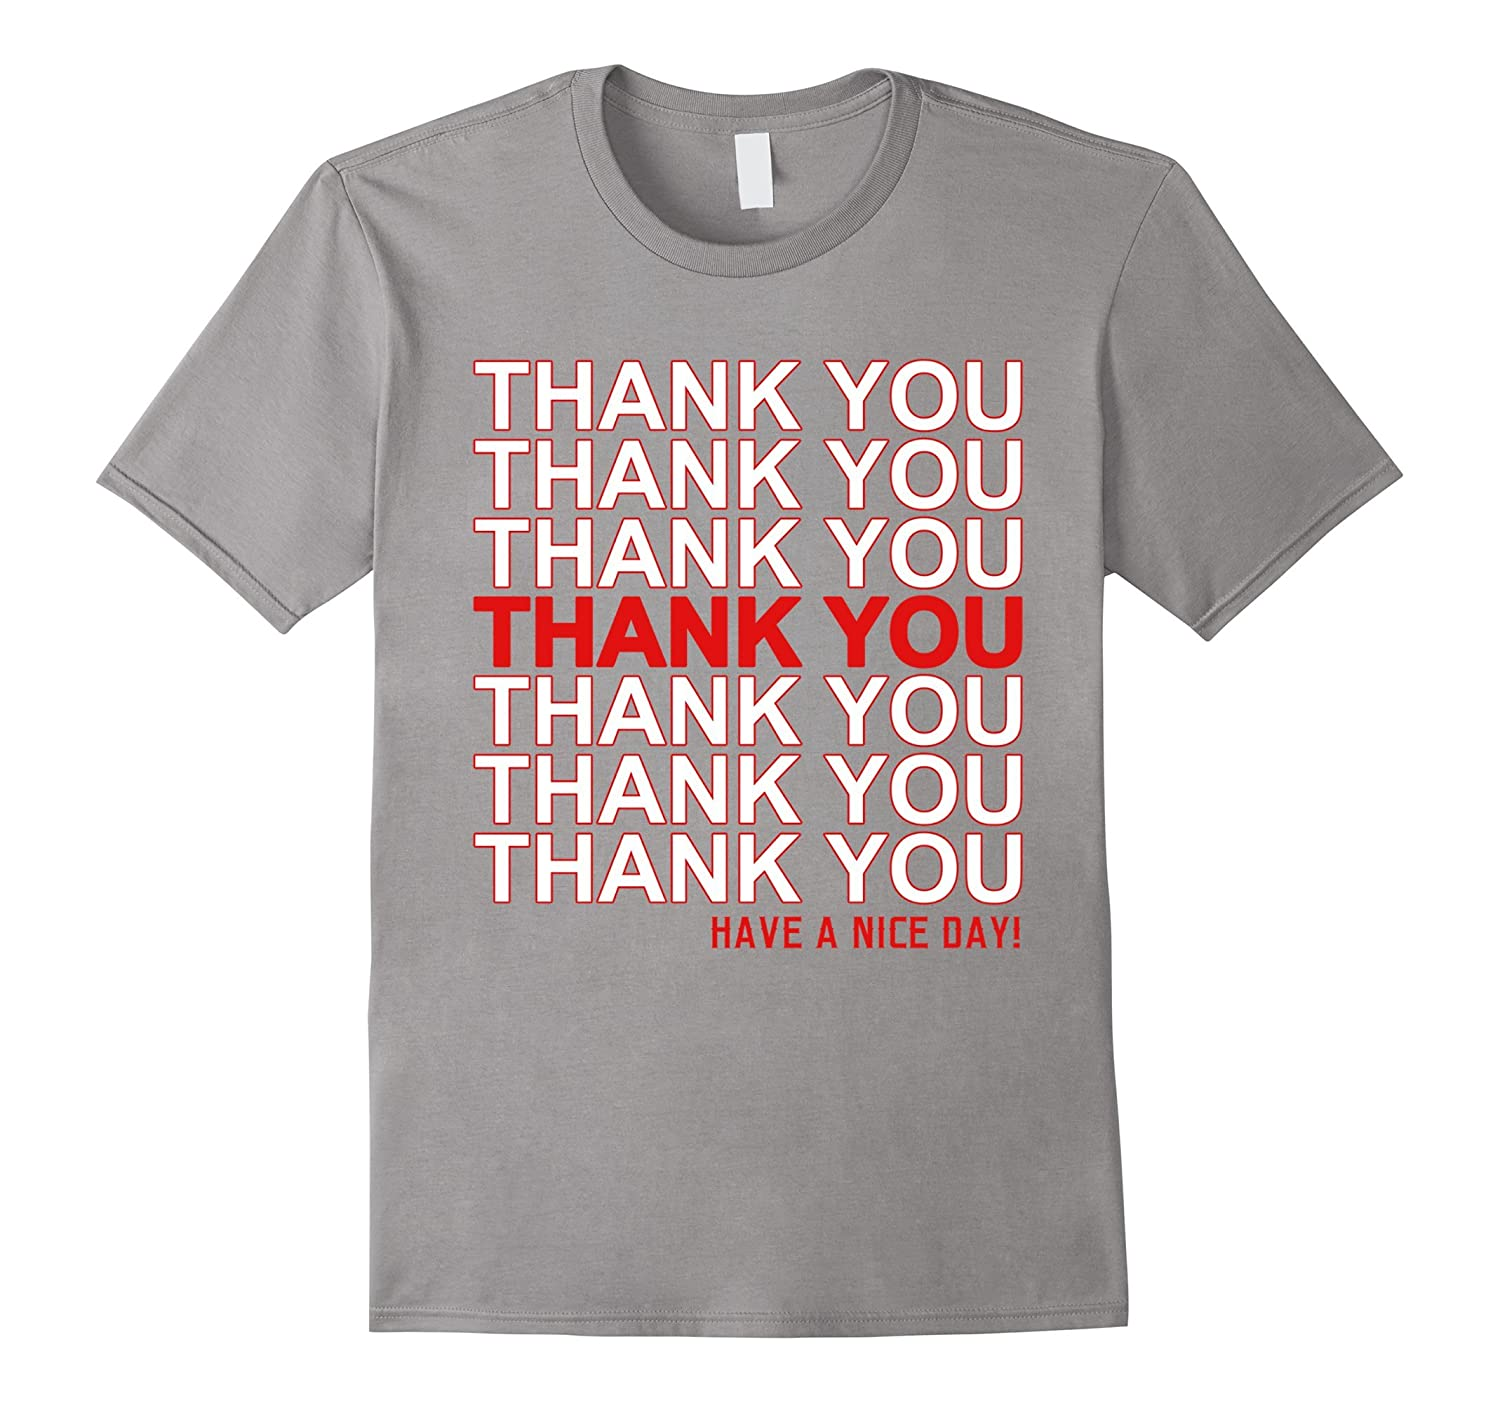 f439709d5 Thank You Have A Nice Day Grocery Bag Novelty Funny T-Shirt-Art ...